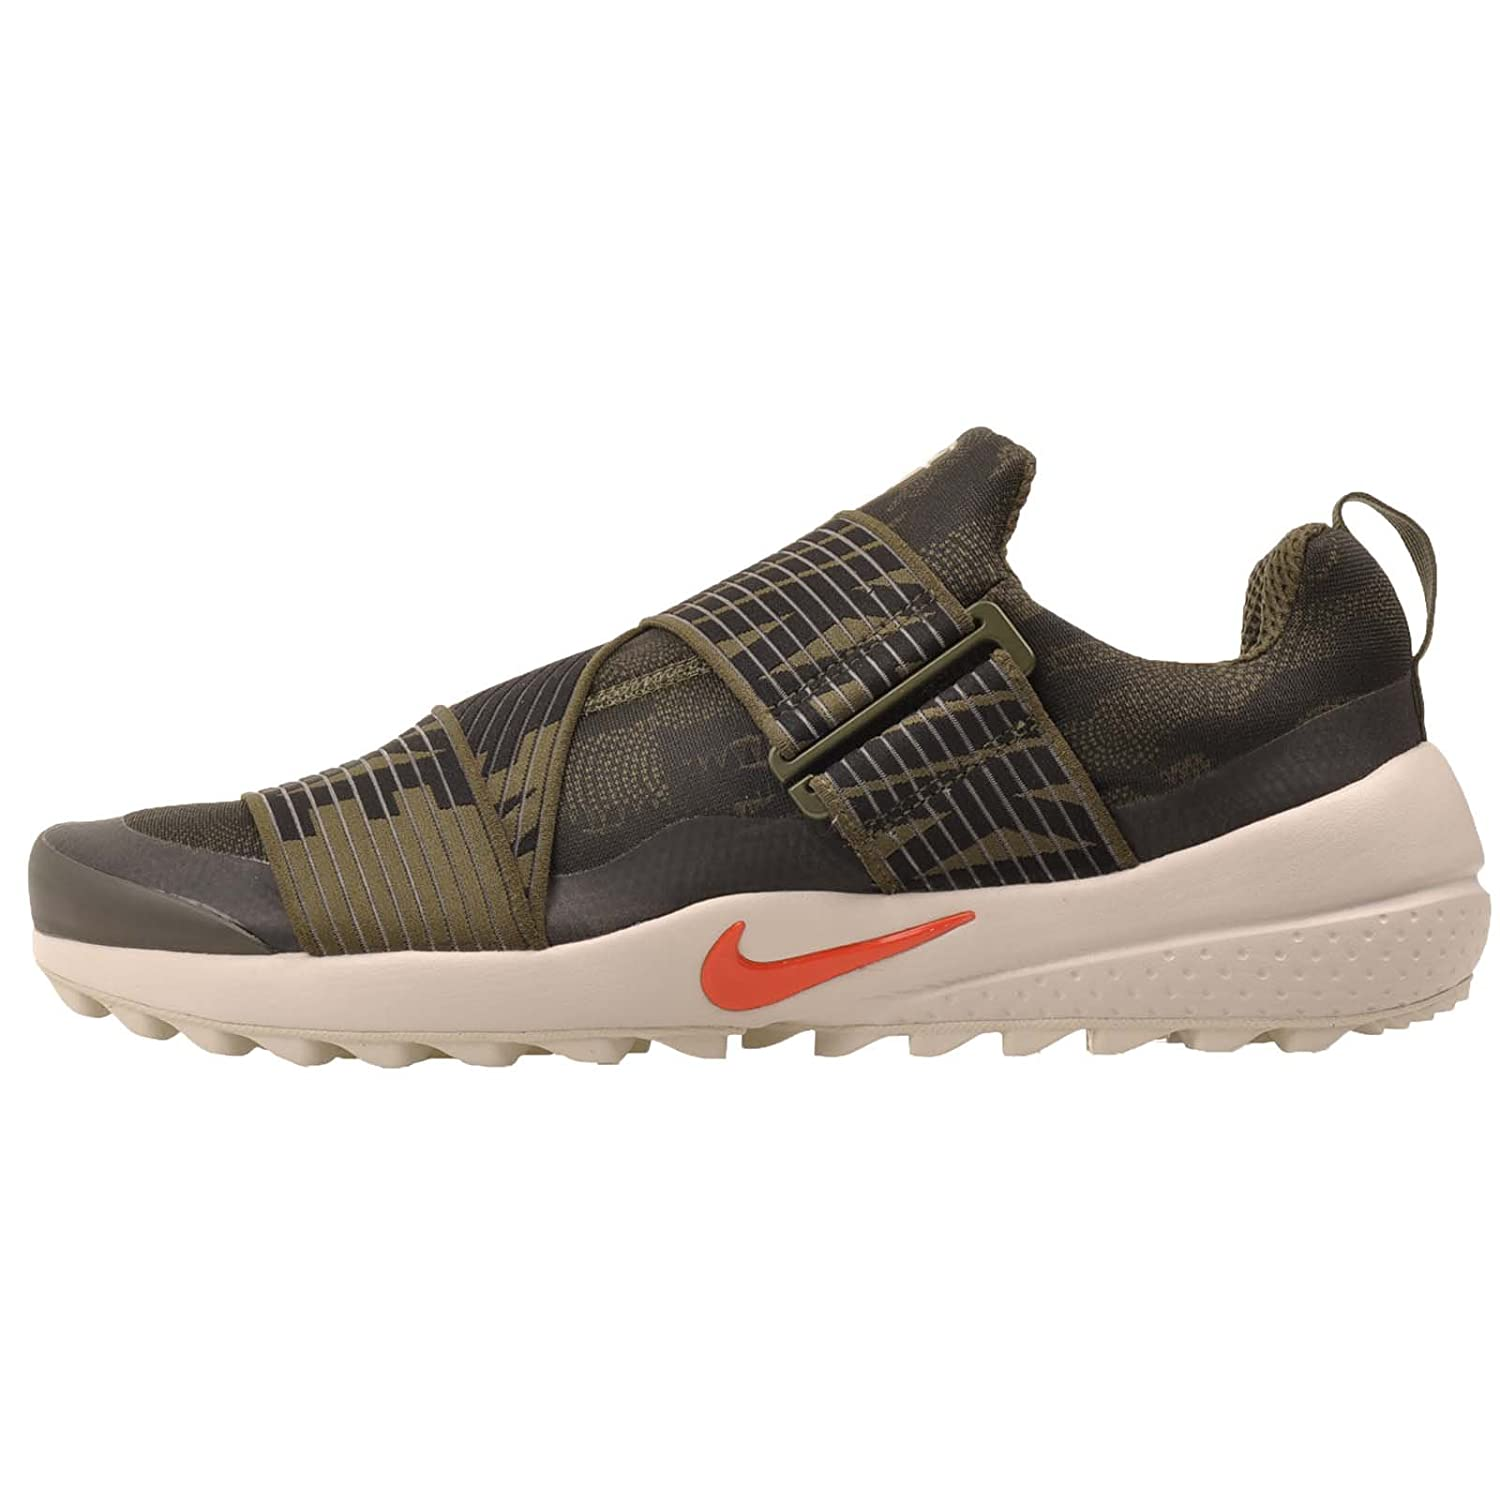 f404dd83c5c43 Nike Air Zoom Gimme Spikeless Golf Shoes 2017 Cargo Khaki Black Light Bone  Max Orange Medium 8. 5  Buy Online at Low Prices in India - Amazon.in